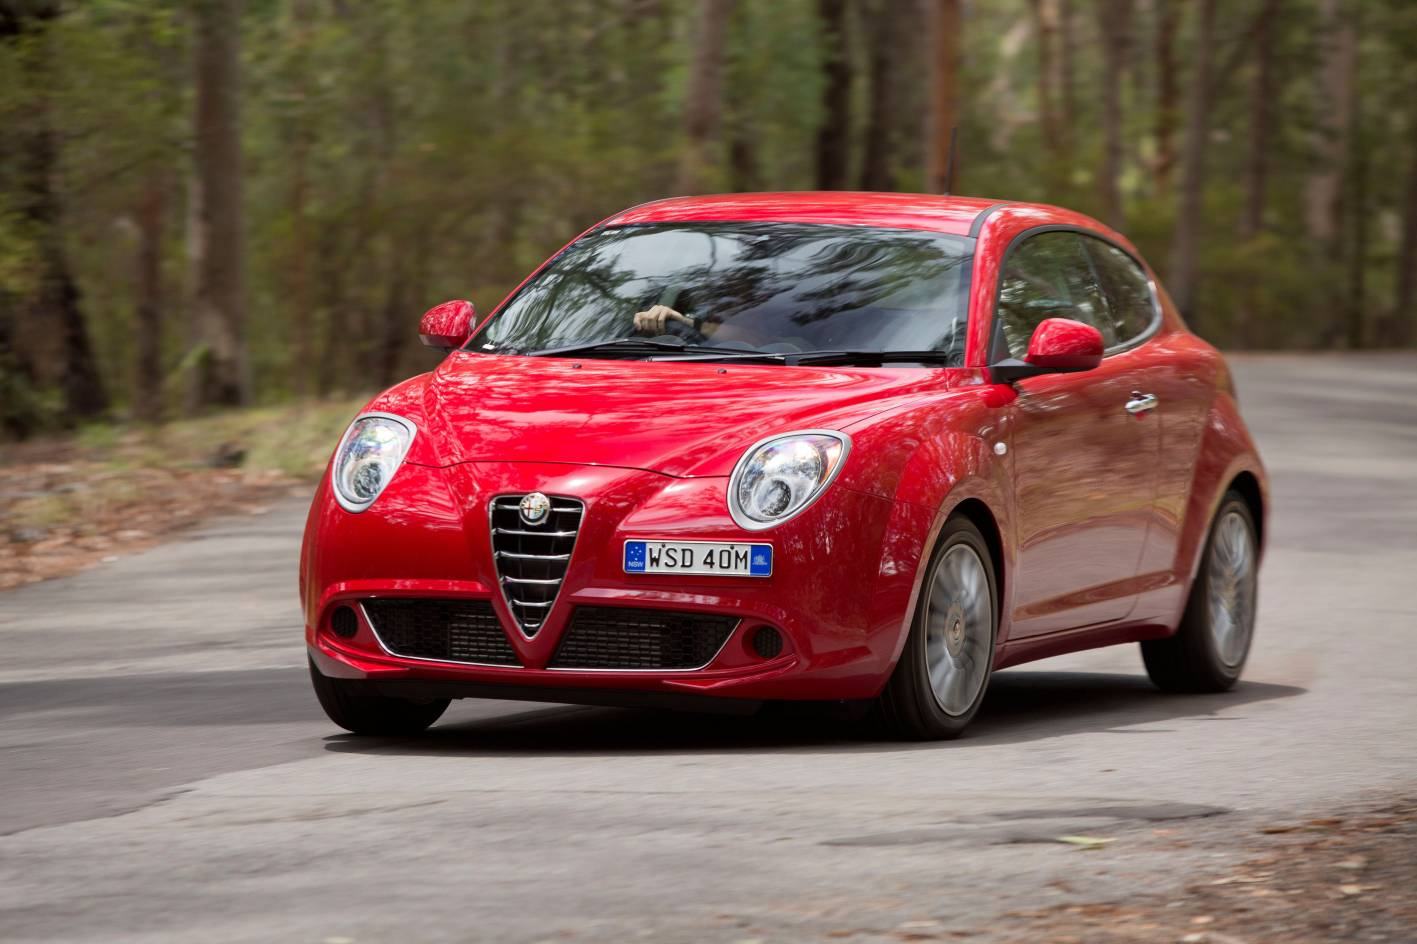 Mercedes Suv Models >> Alfa Romeo : eight new models including SUVs by 2018 - photos | CarAdvice